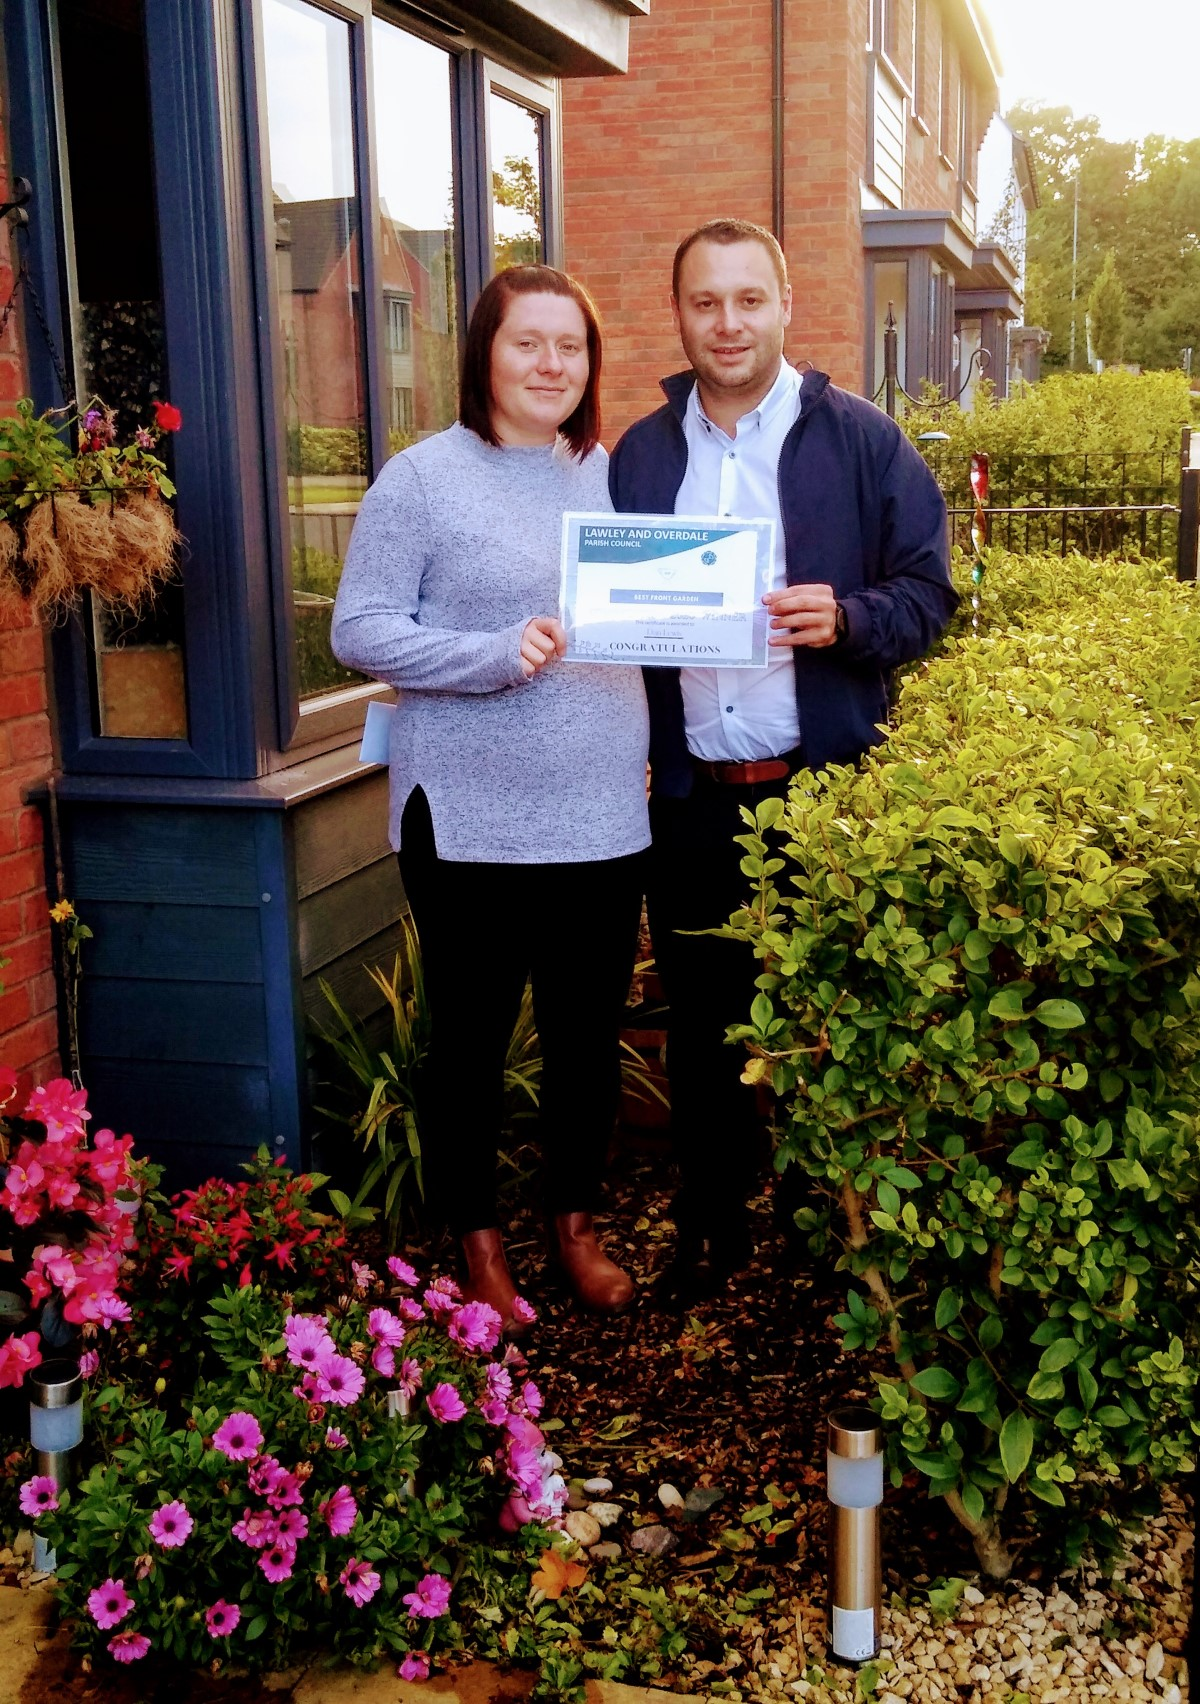 A photograph of a man and a woman standing next to each other in their front garden, next to a window and surrounded by plants. They are holding their Best Garden Competition certificate together.